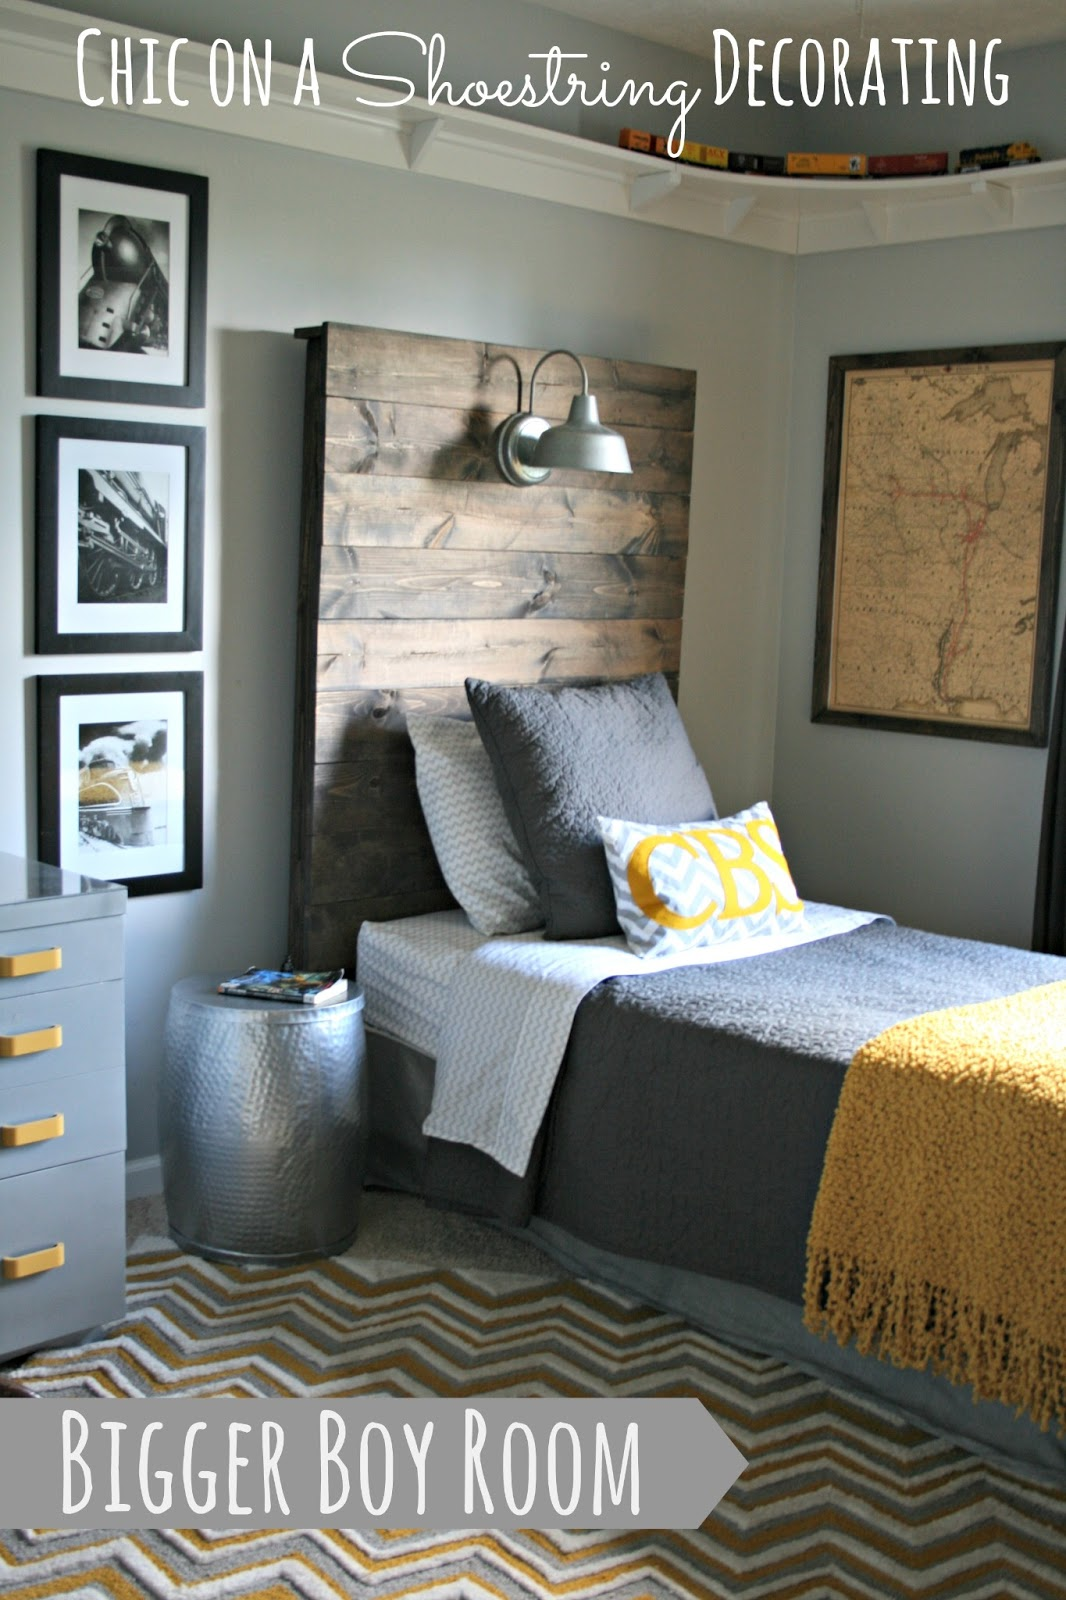 Chic on a shoestring decorating bigger boy room reveal 15 year old boy bedroom ideas